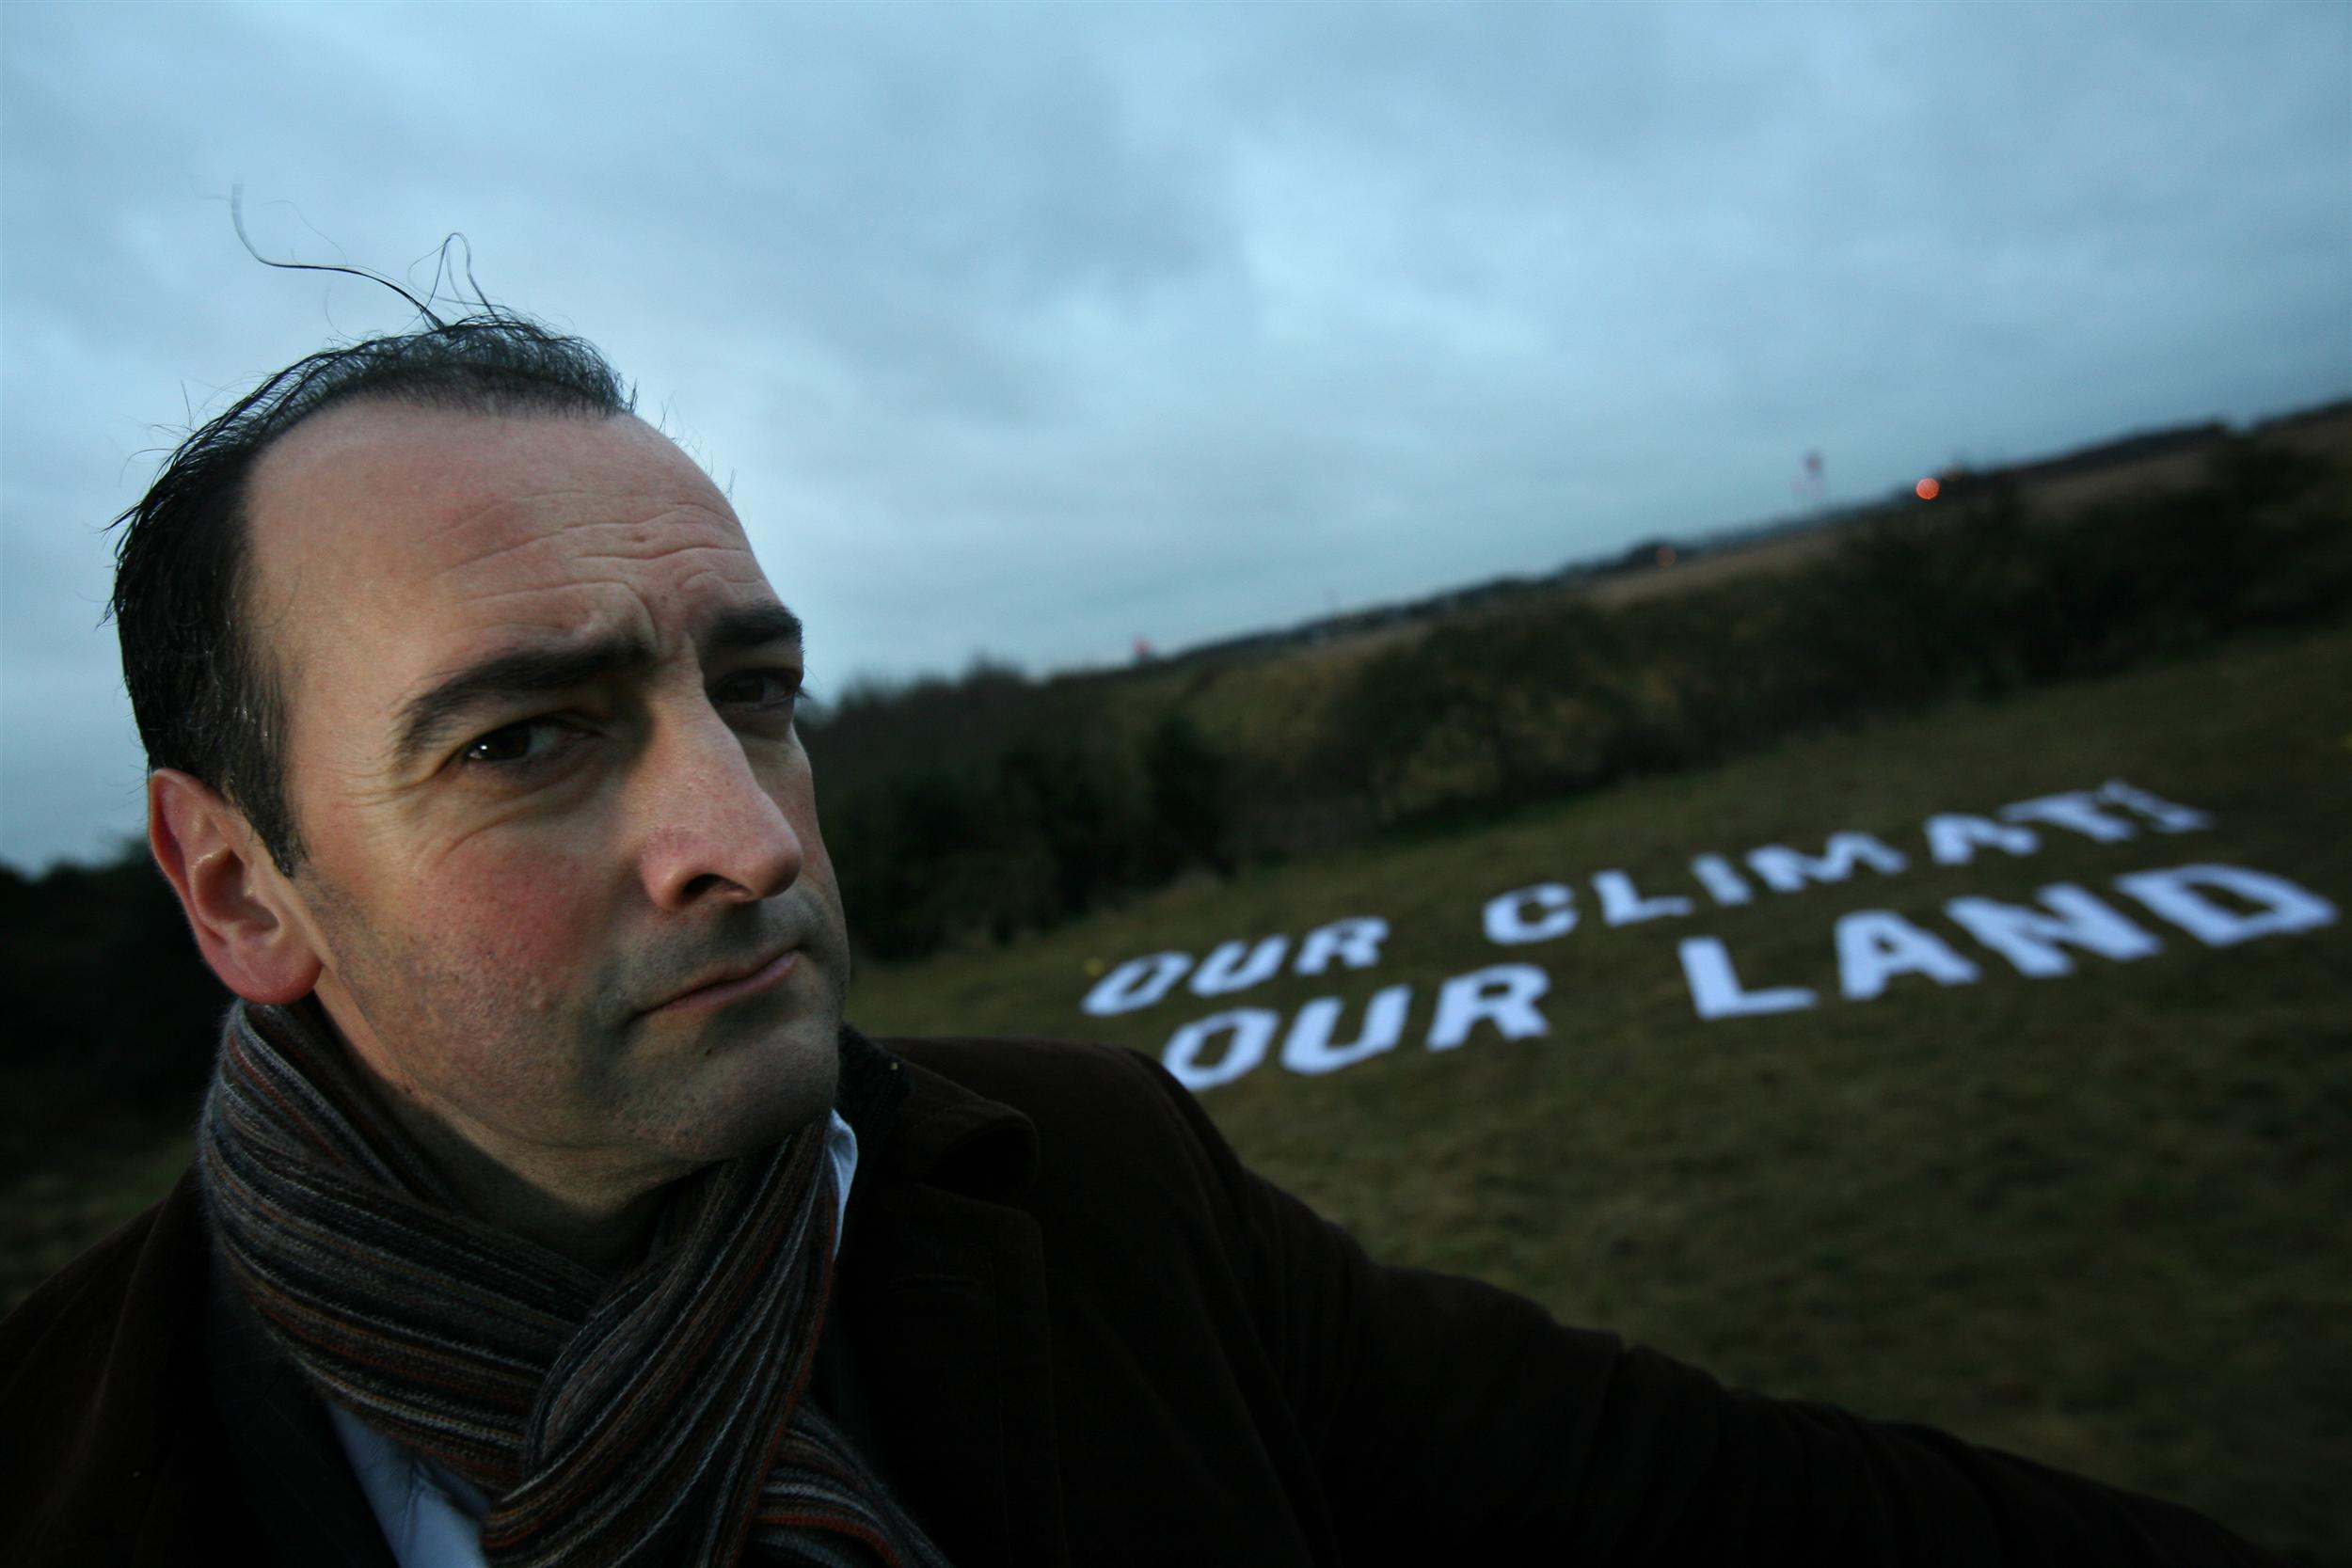 man standing in front of field with 'Our Climate Our Land' message on it